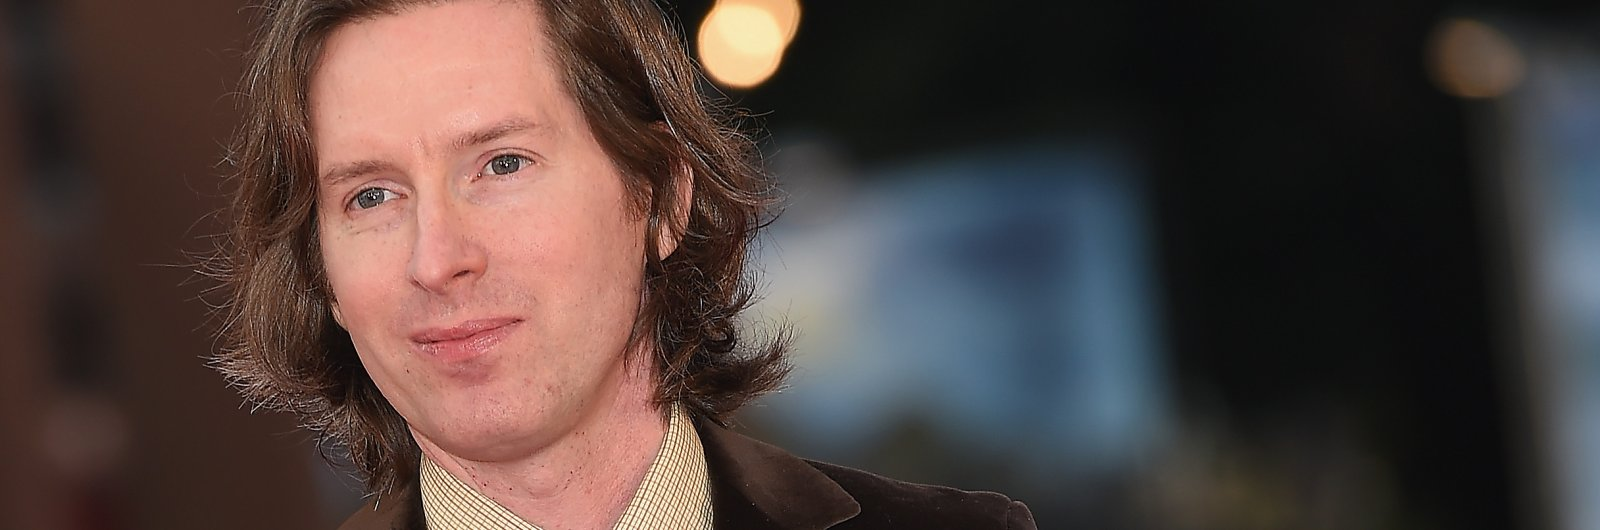 Of Course Wes Anderson Is Curating an Art Show